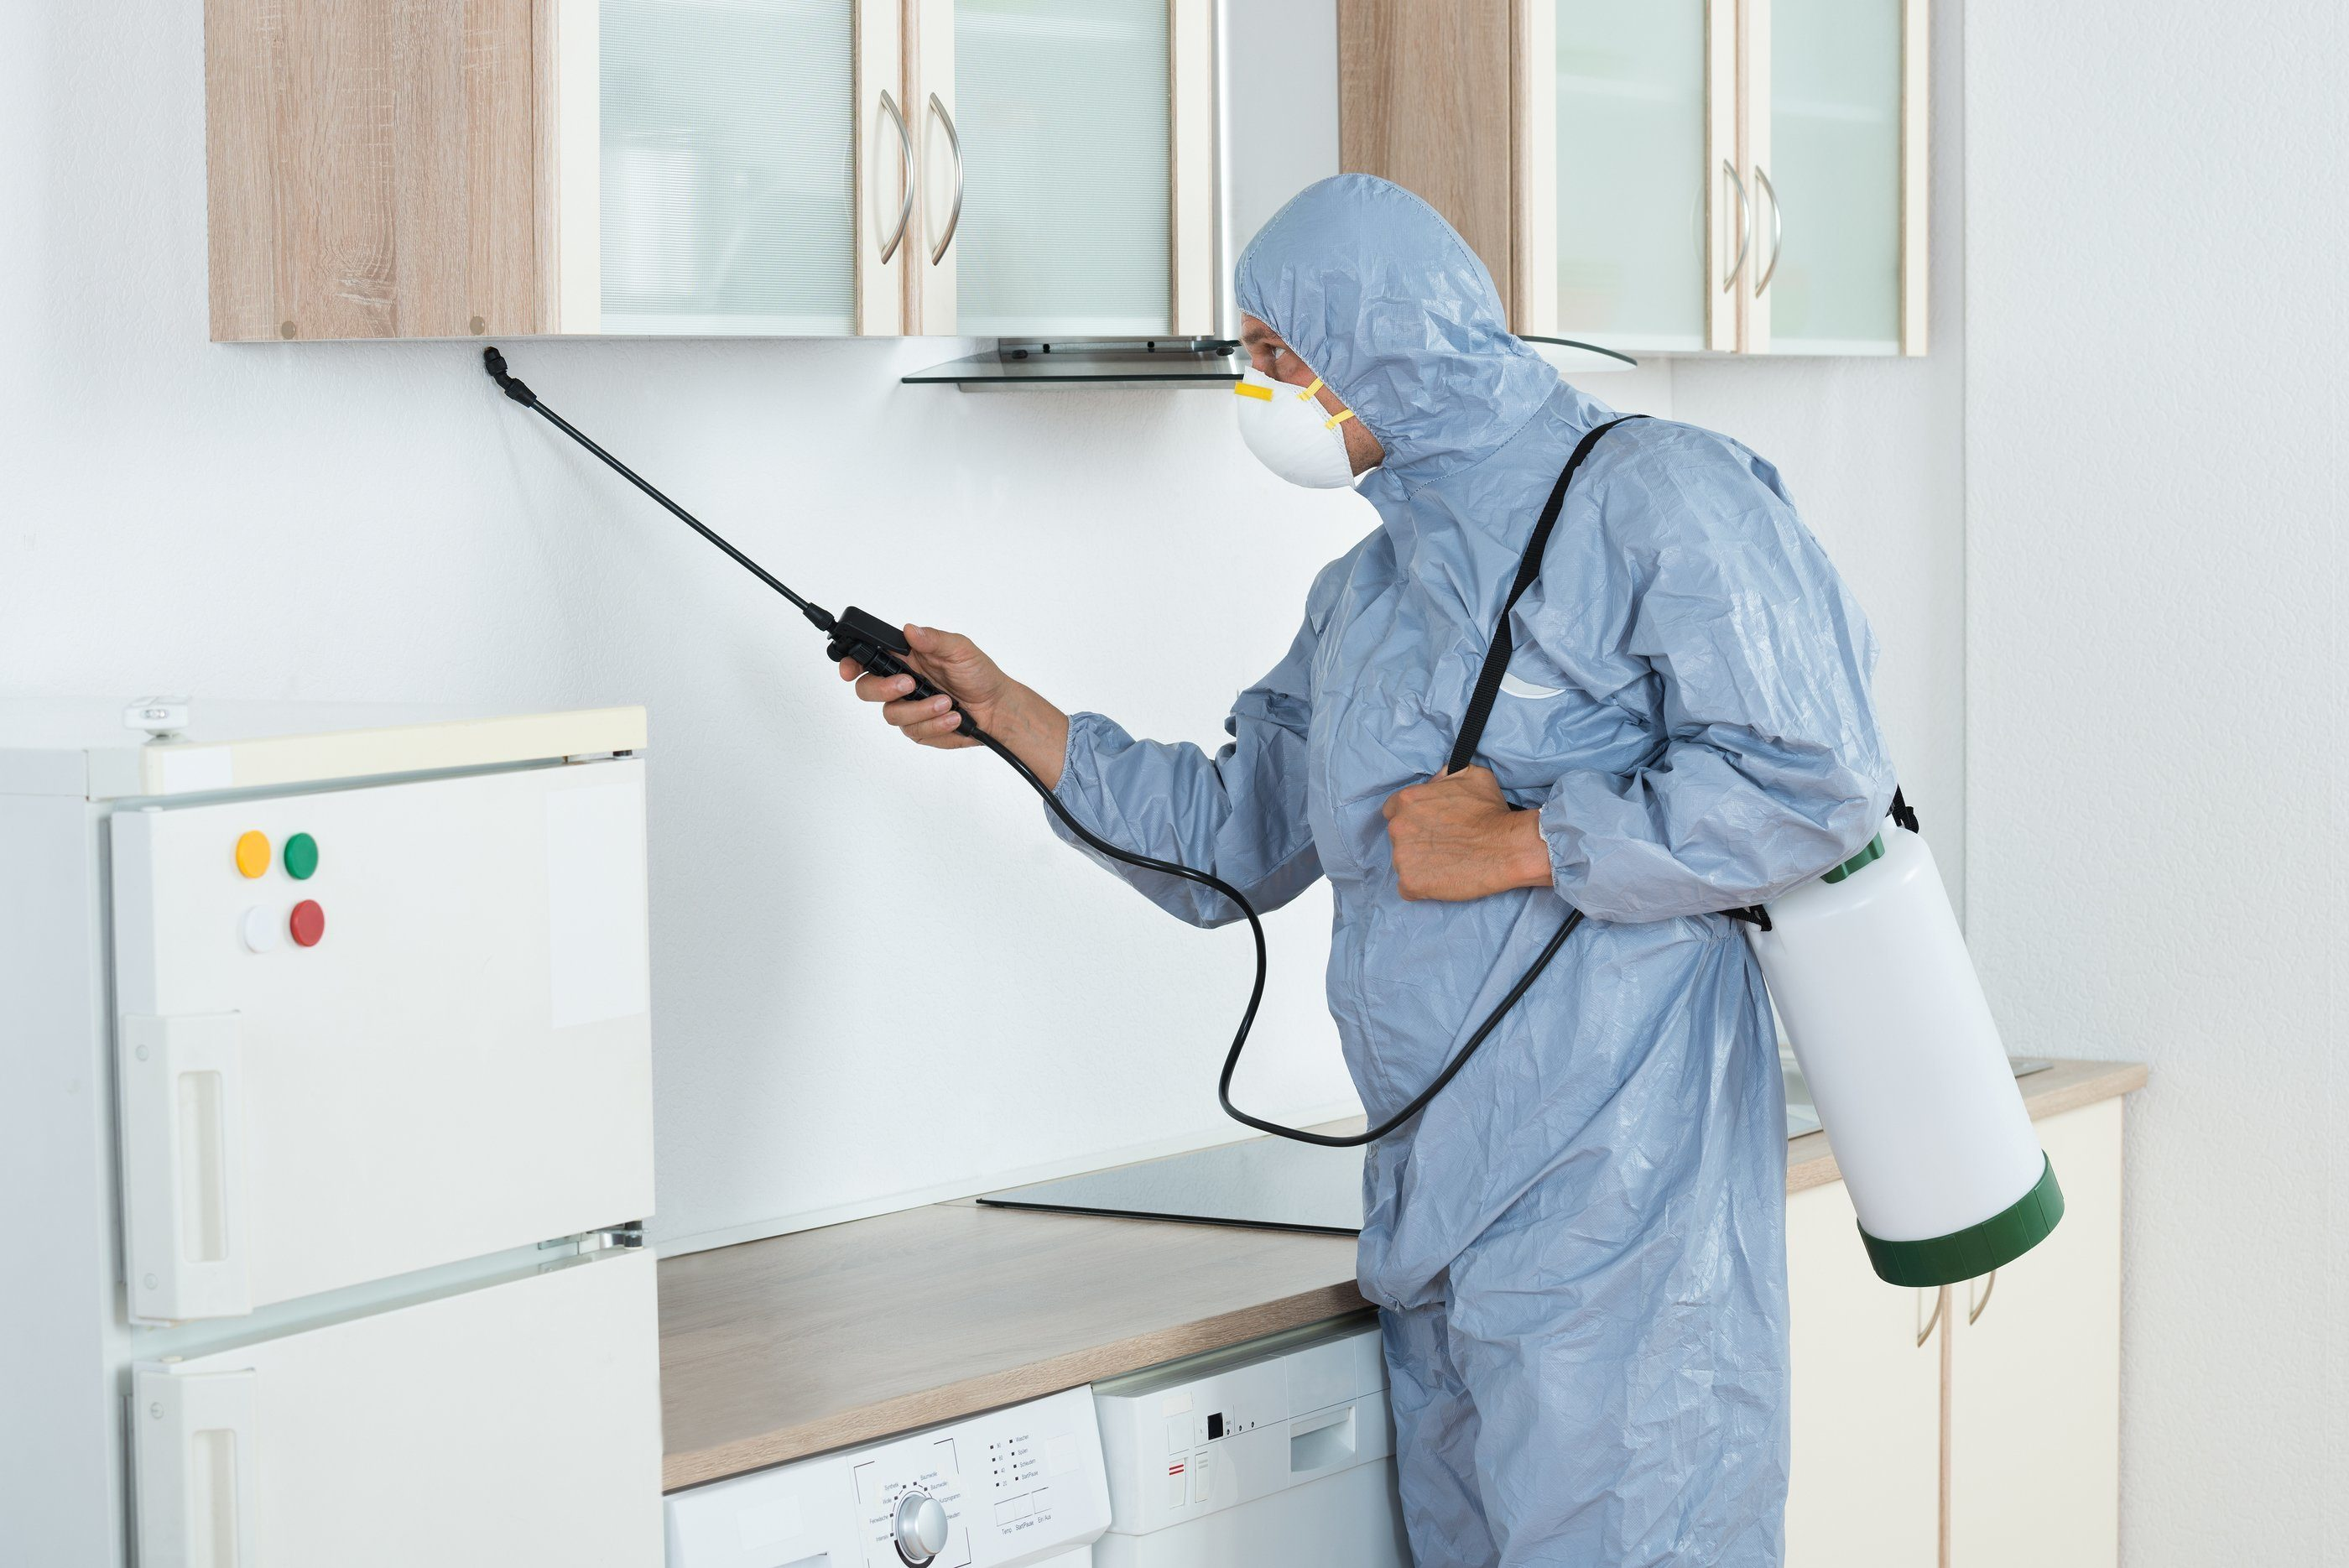 Bed Bugs Extermination - Coping With a Bed Bug Infestation